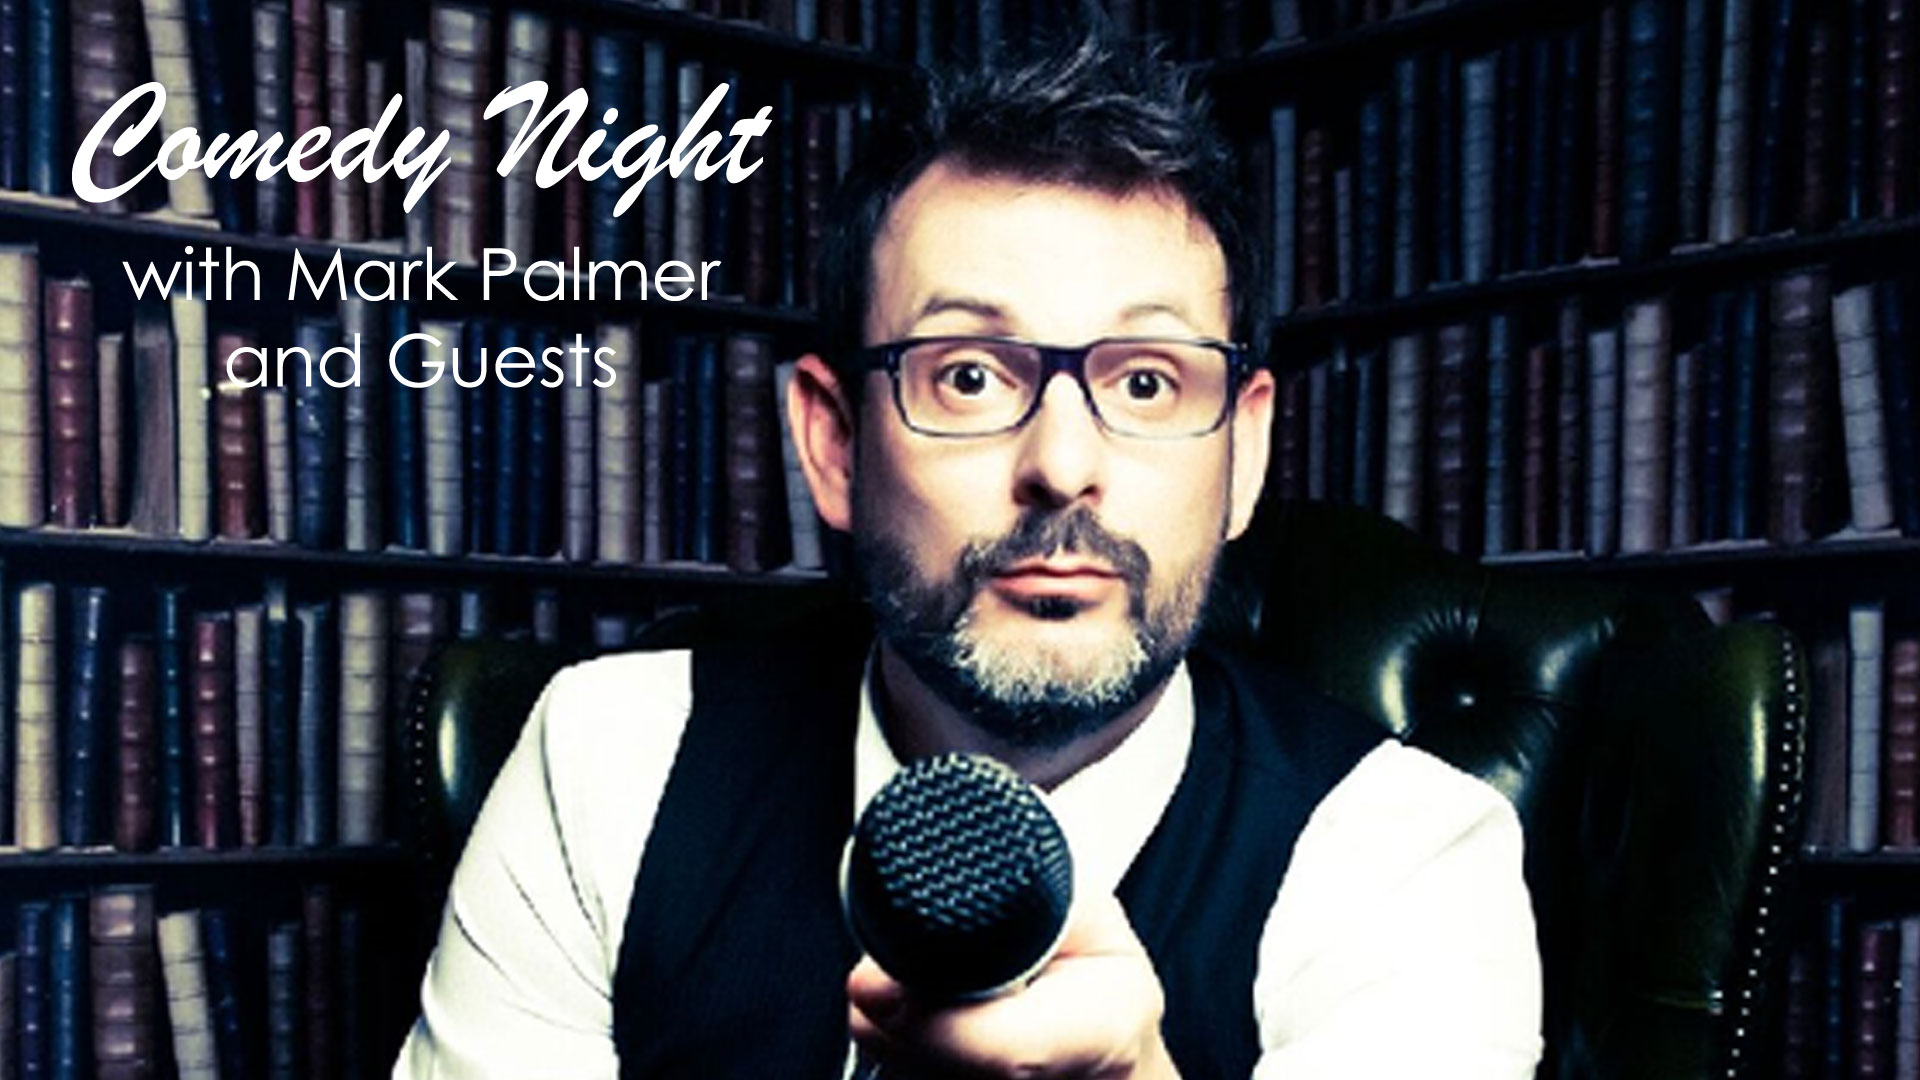 Comedy Night with Mark Palmer and Guests